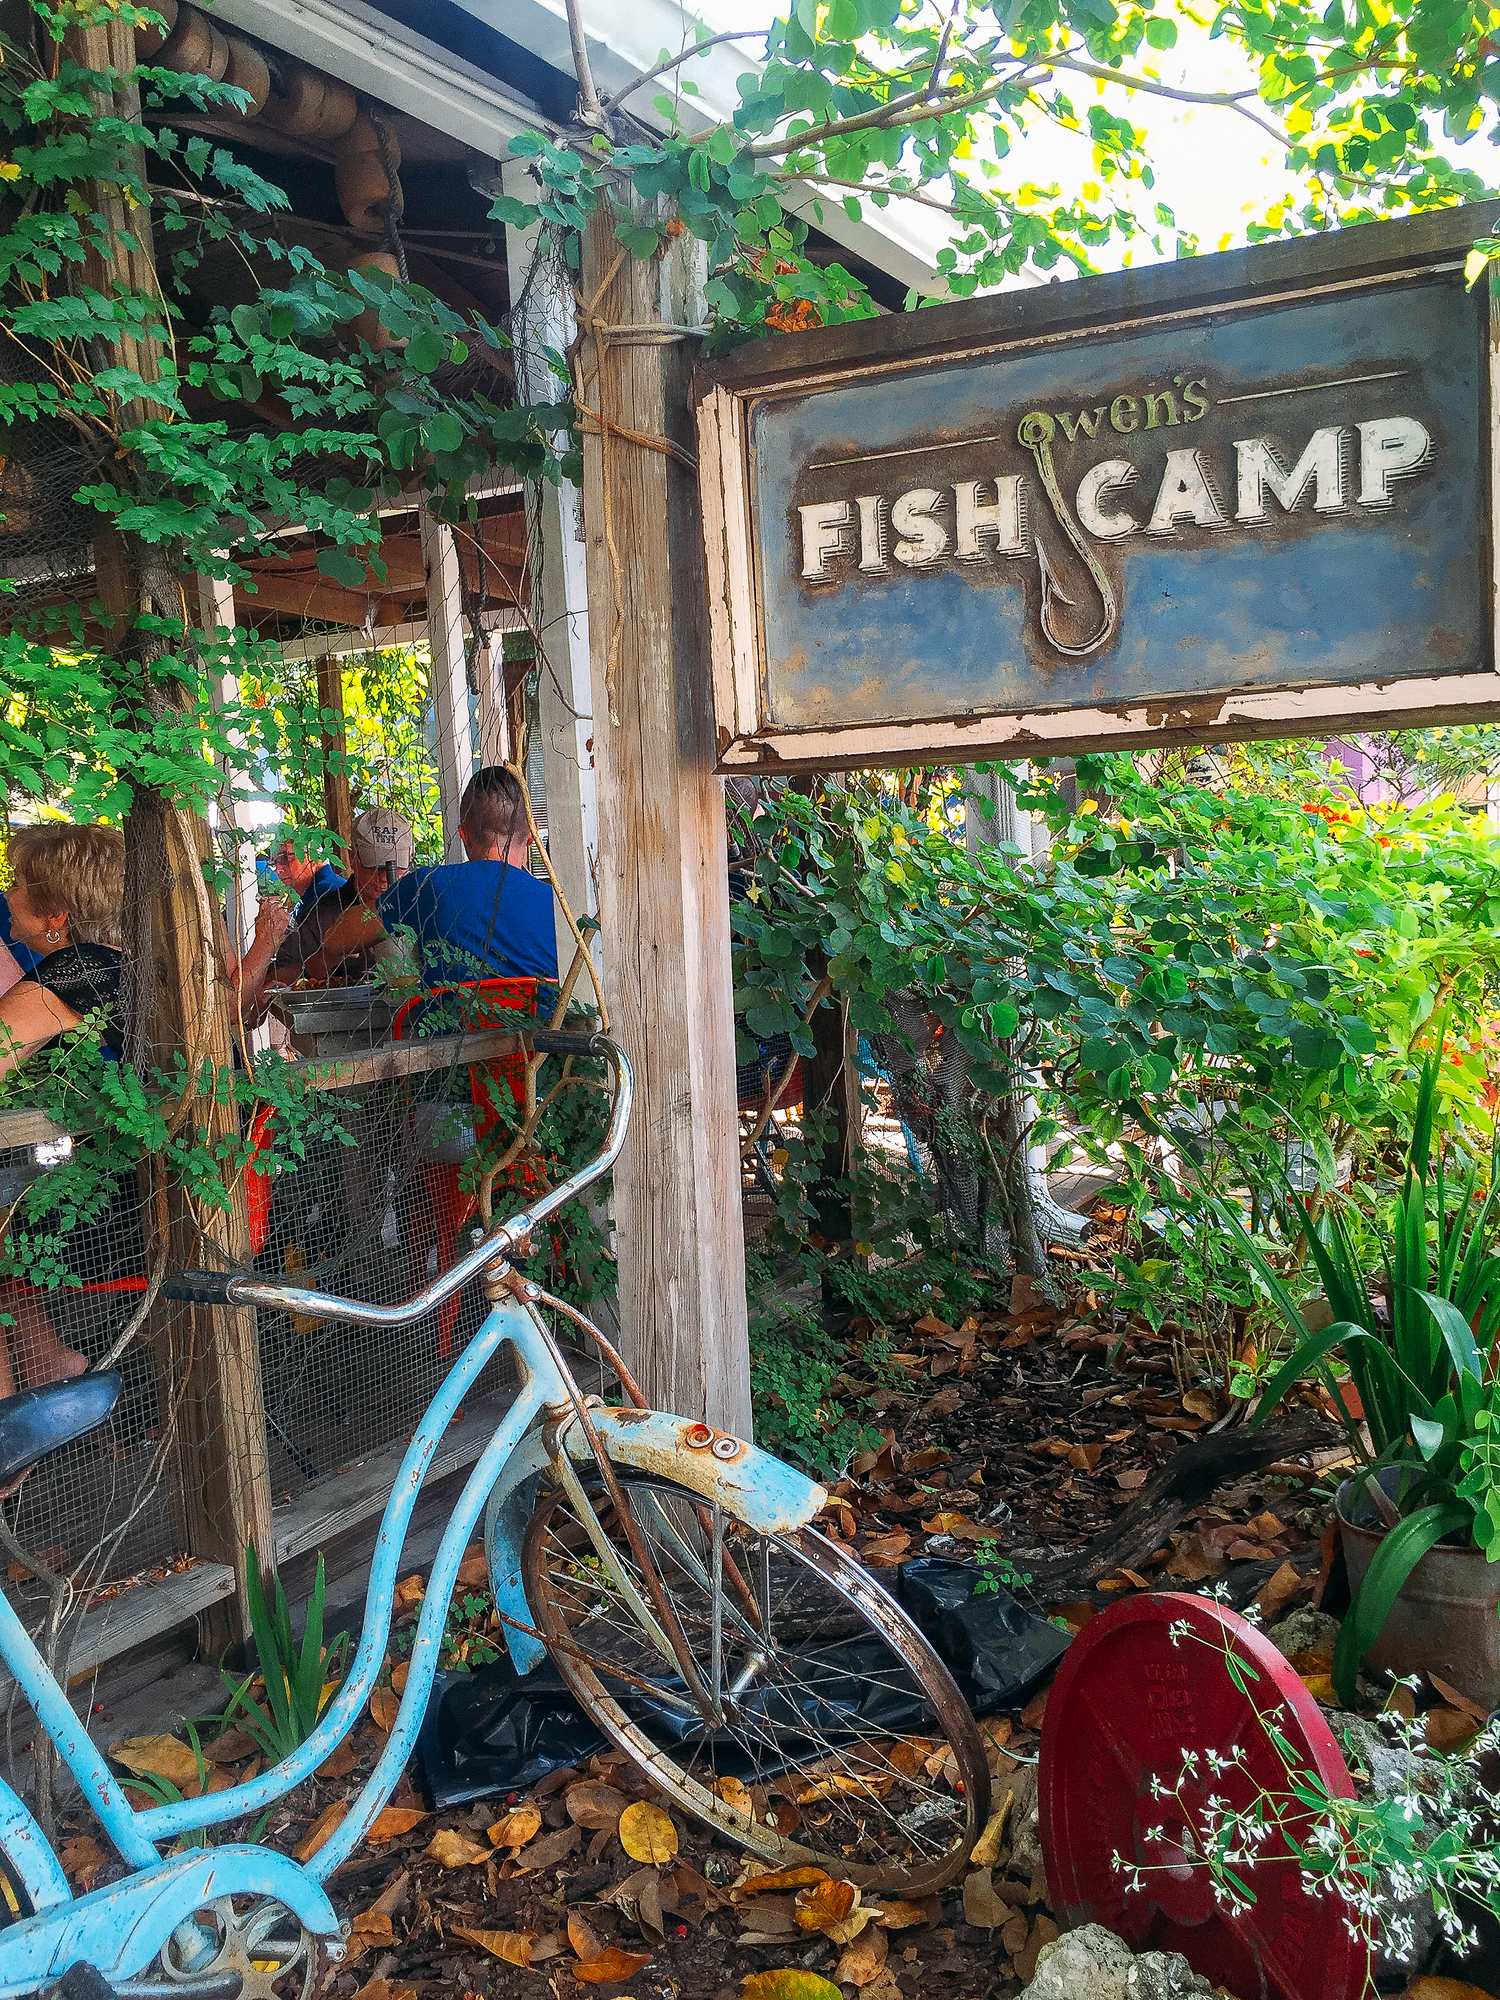 Owen's Fish Camp is just one of many places to eat in Sarasota, Florida.